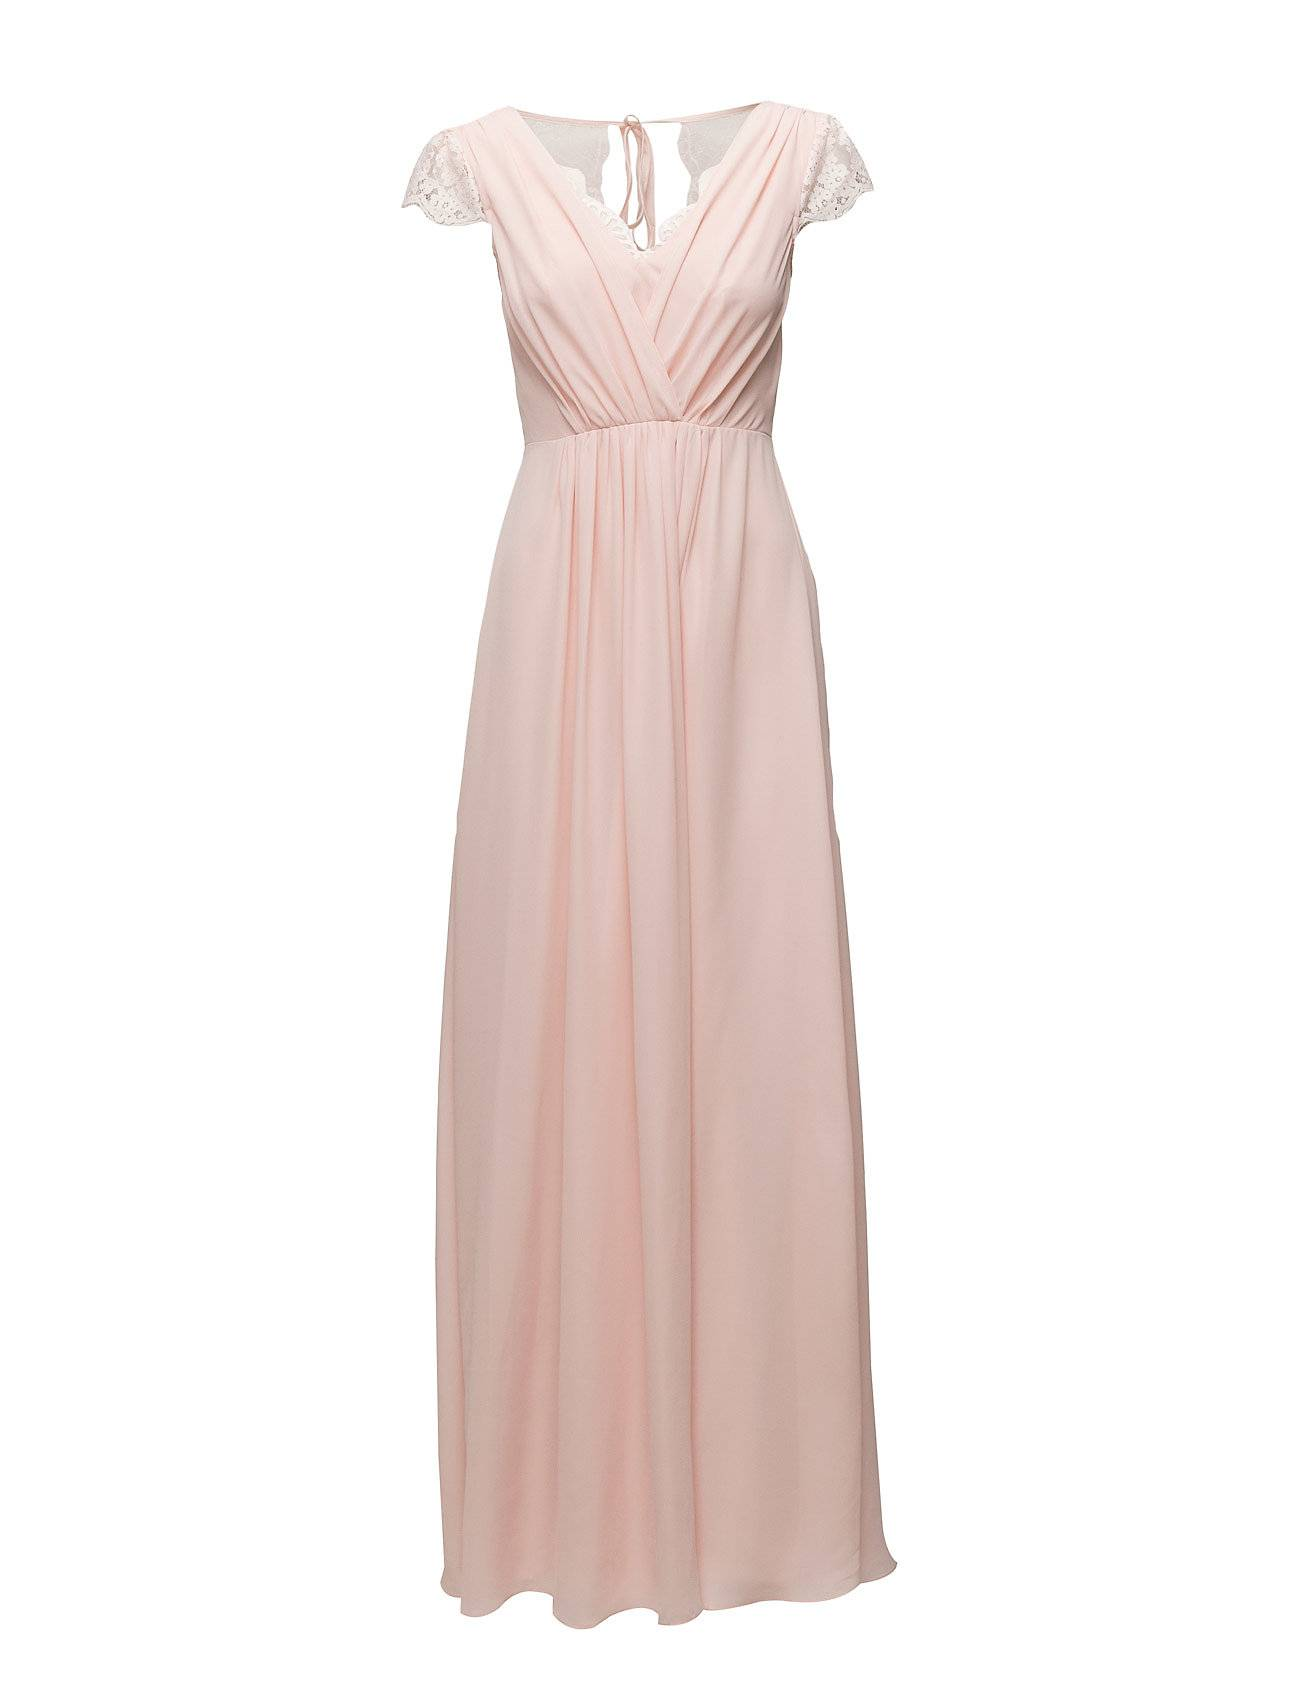 By Malina Zarah Maxi Dress